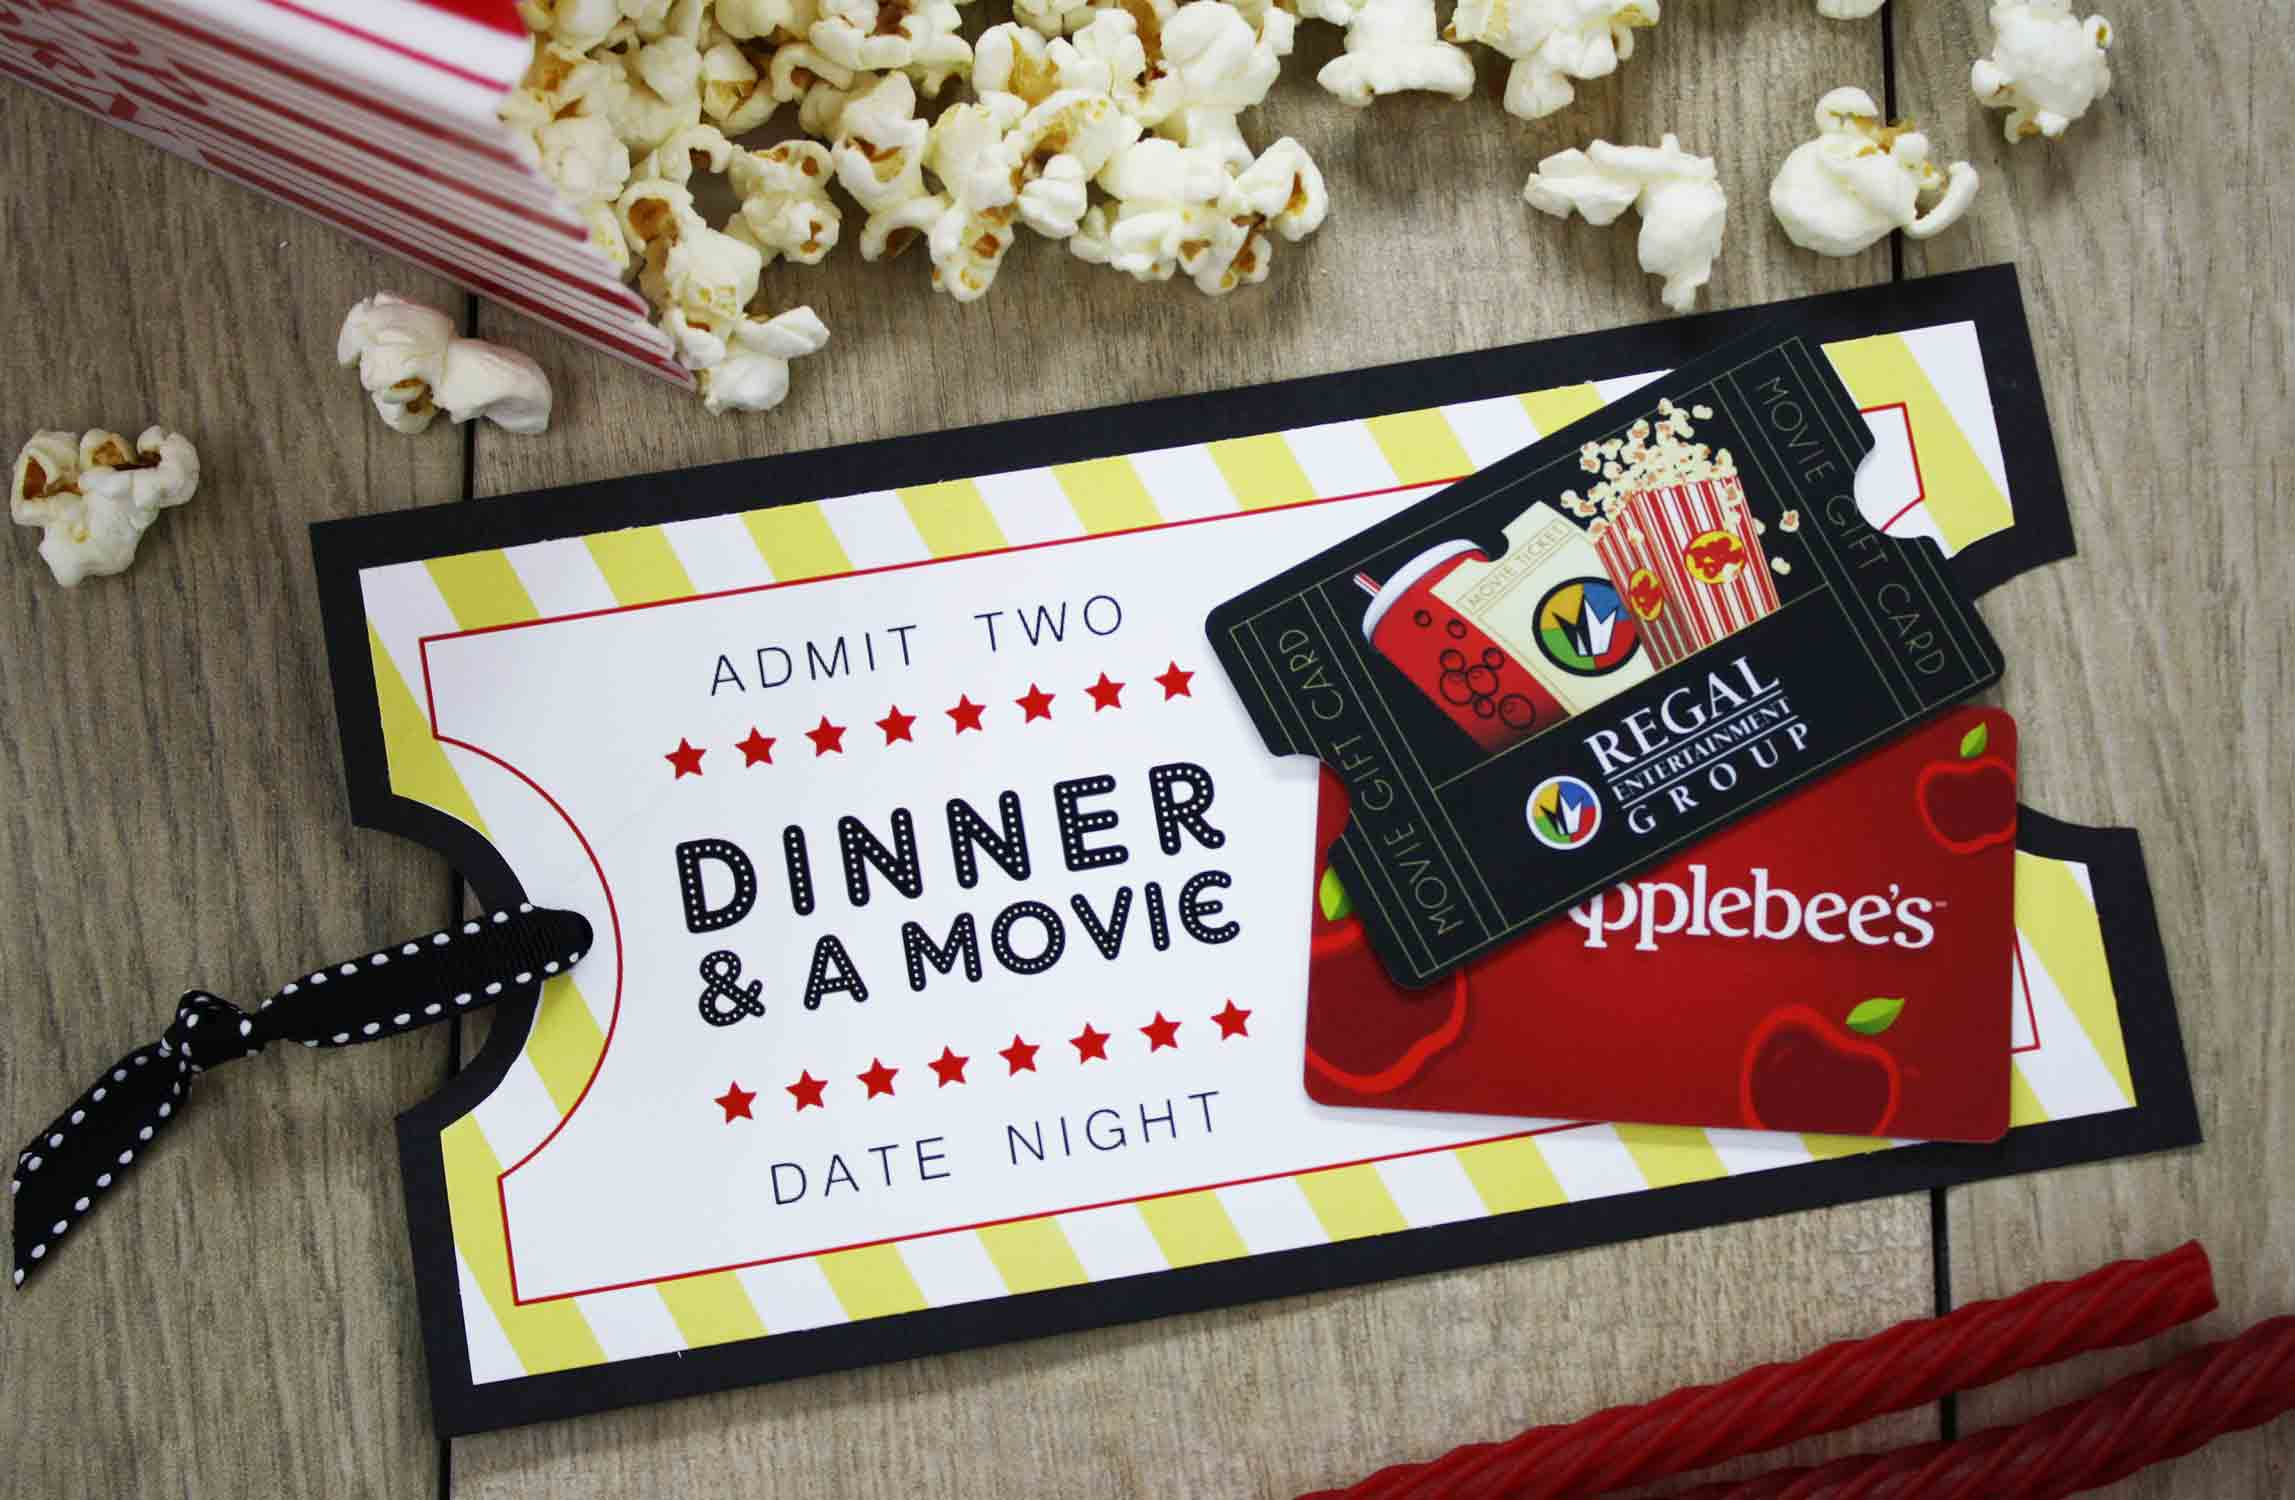 Date Night Gift For Wedding : Free Printable} Give DATE NIGHT for a Wedding Gift GCG